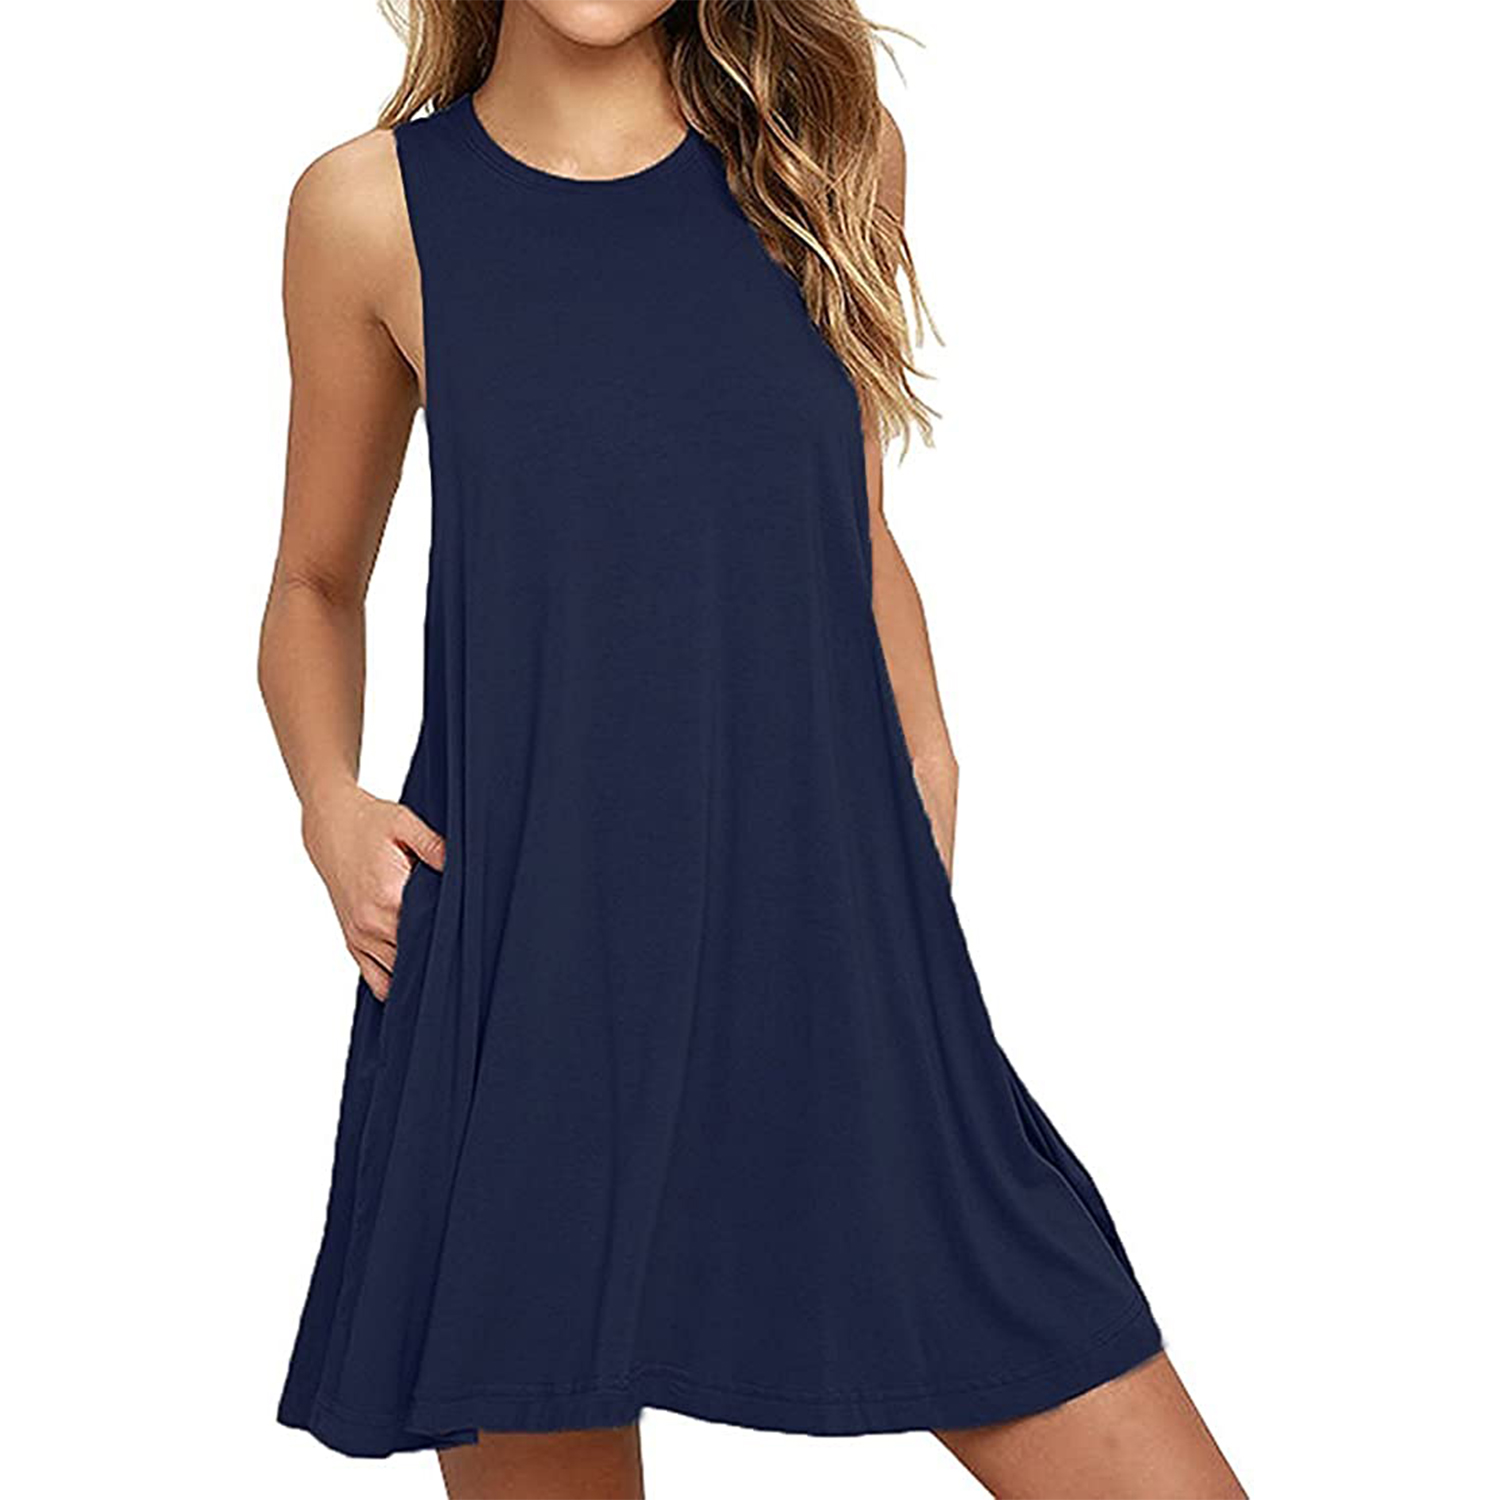 Summer Casual Swing T-Shirt Dresses Beach Cover up with Pockets